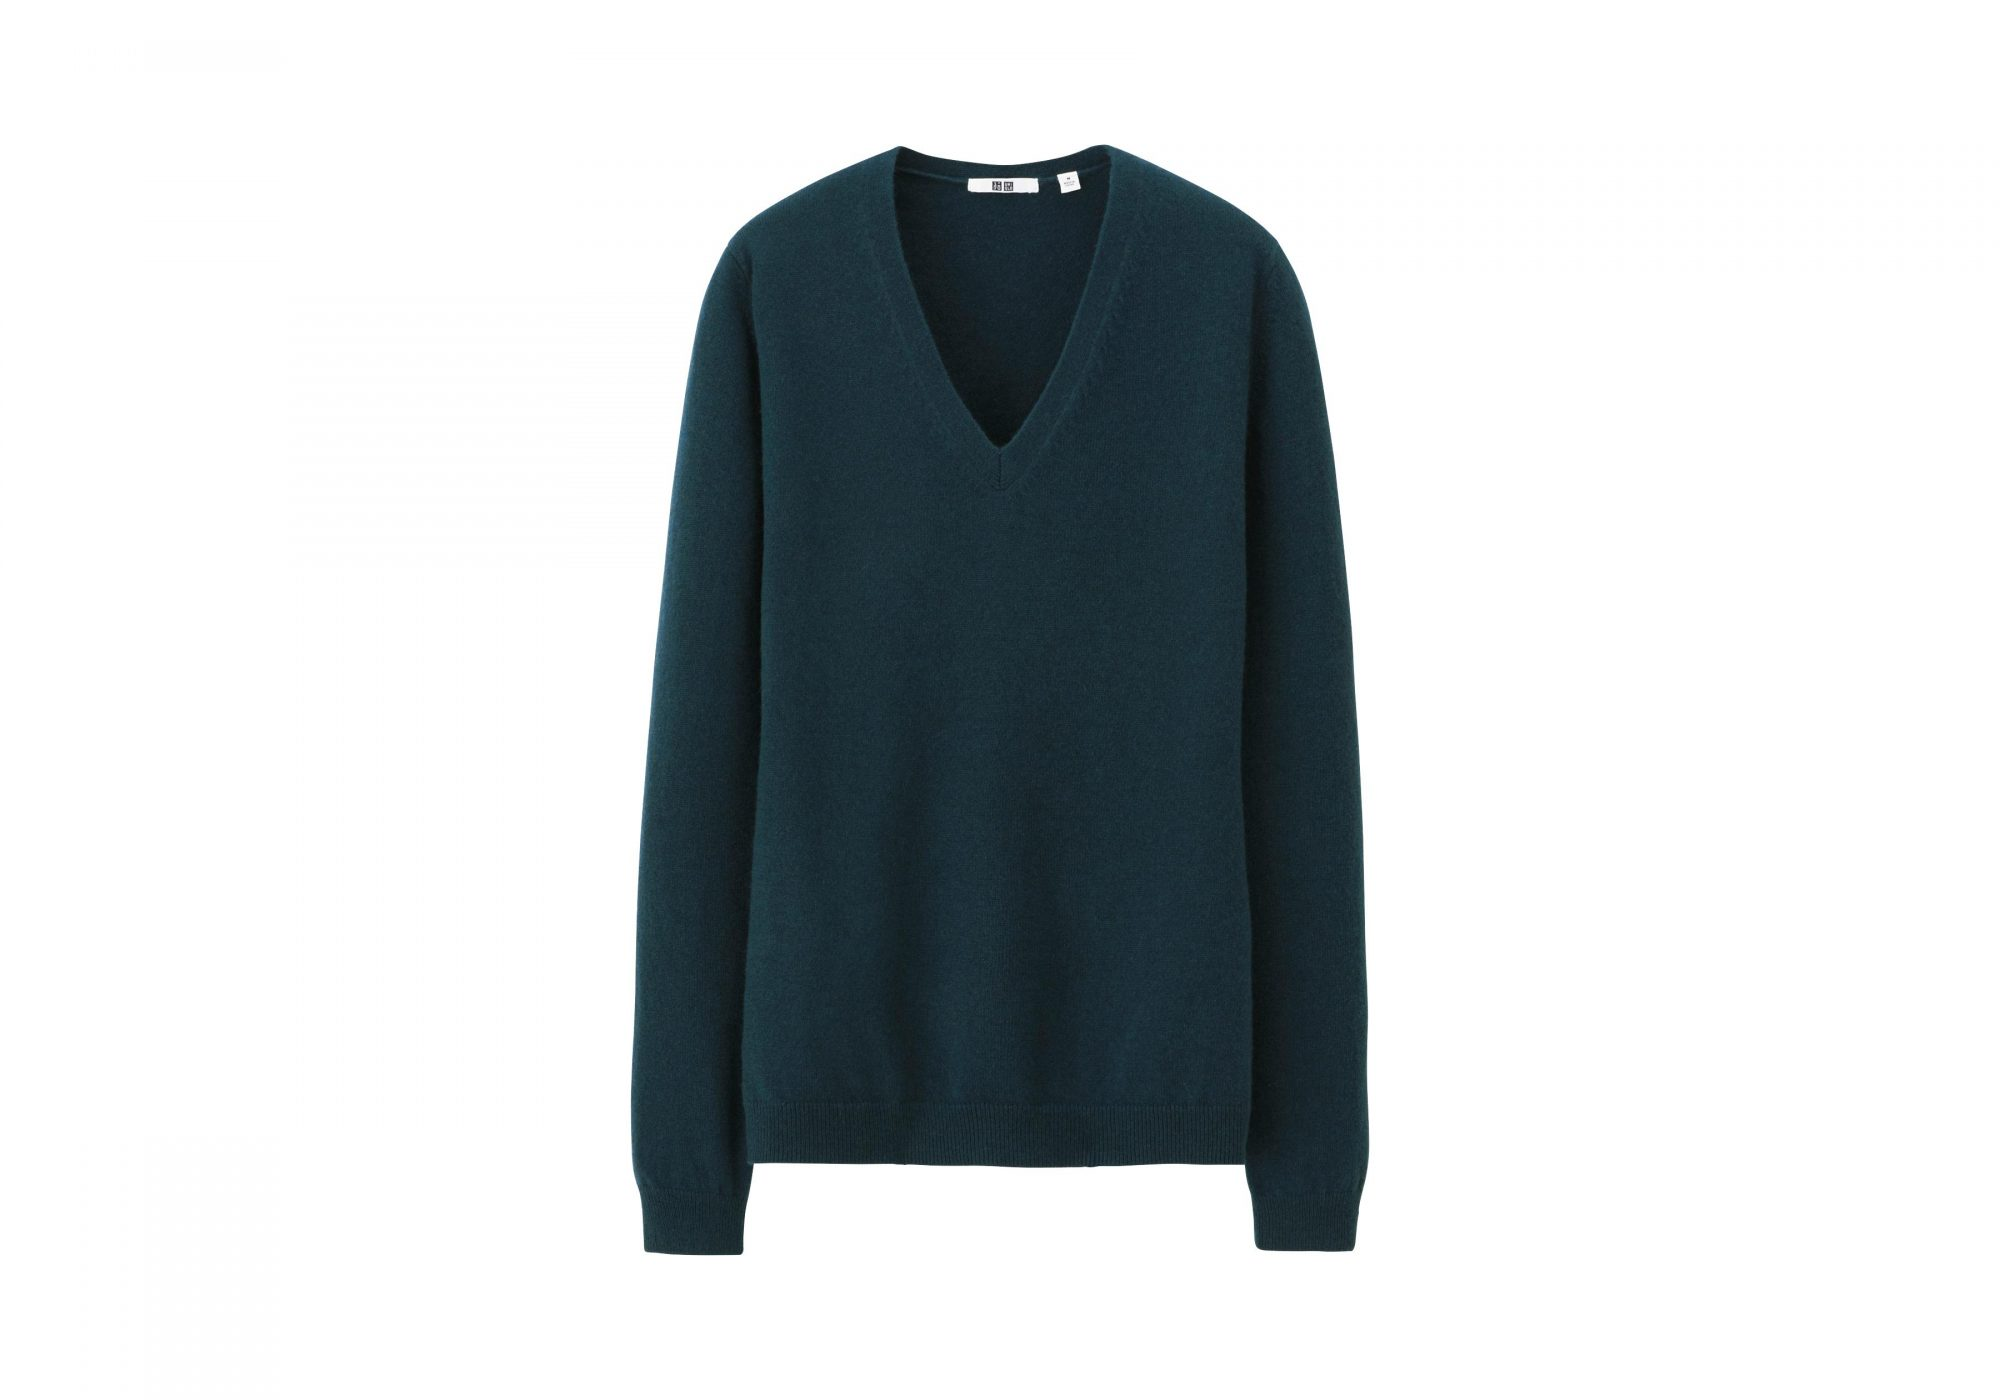 Uniqlo Women Cashmere V Neck Sweater